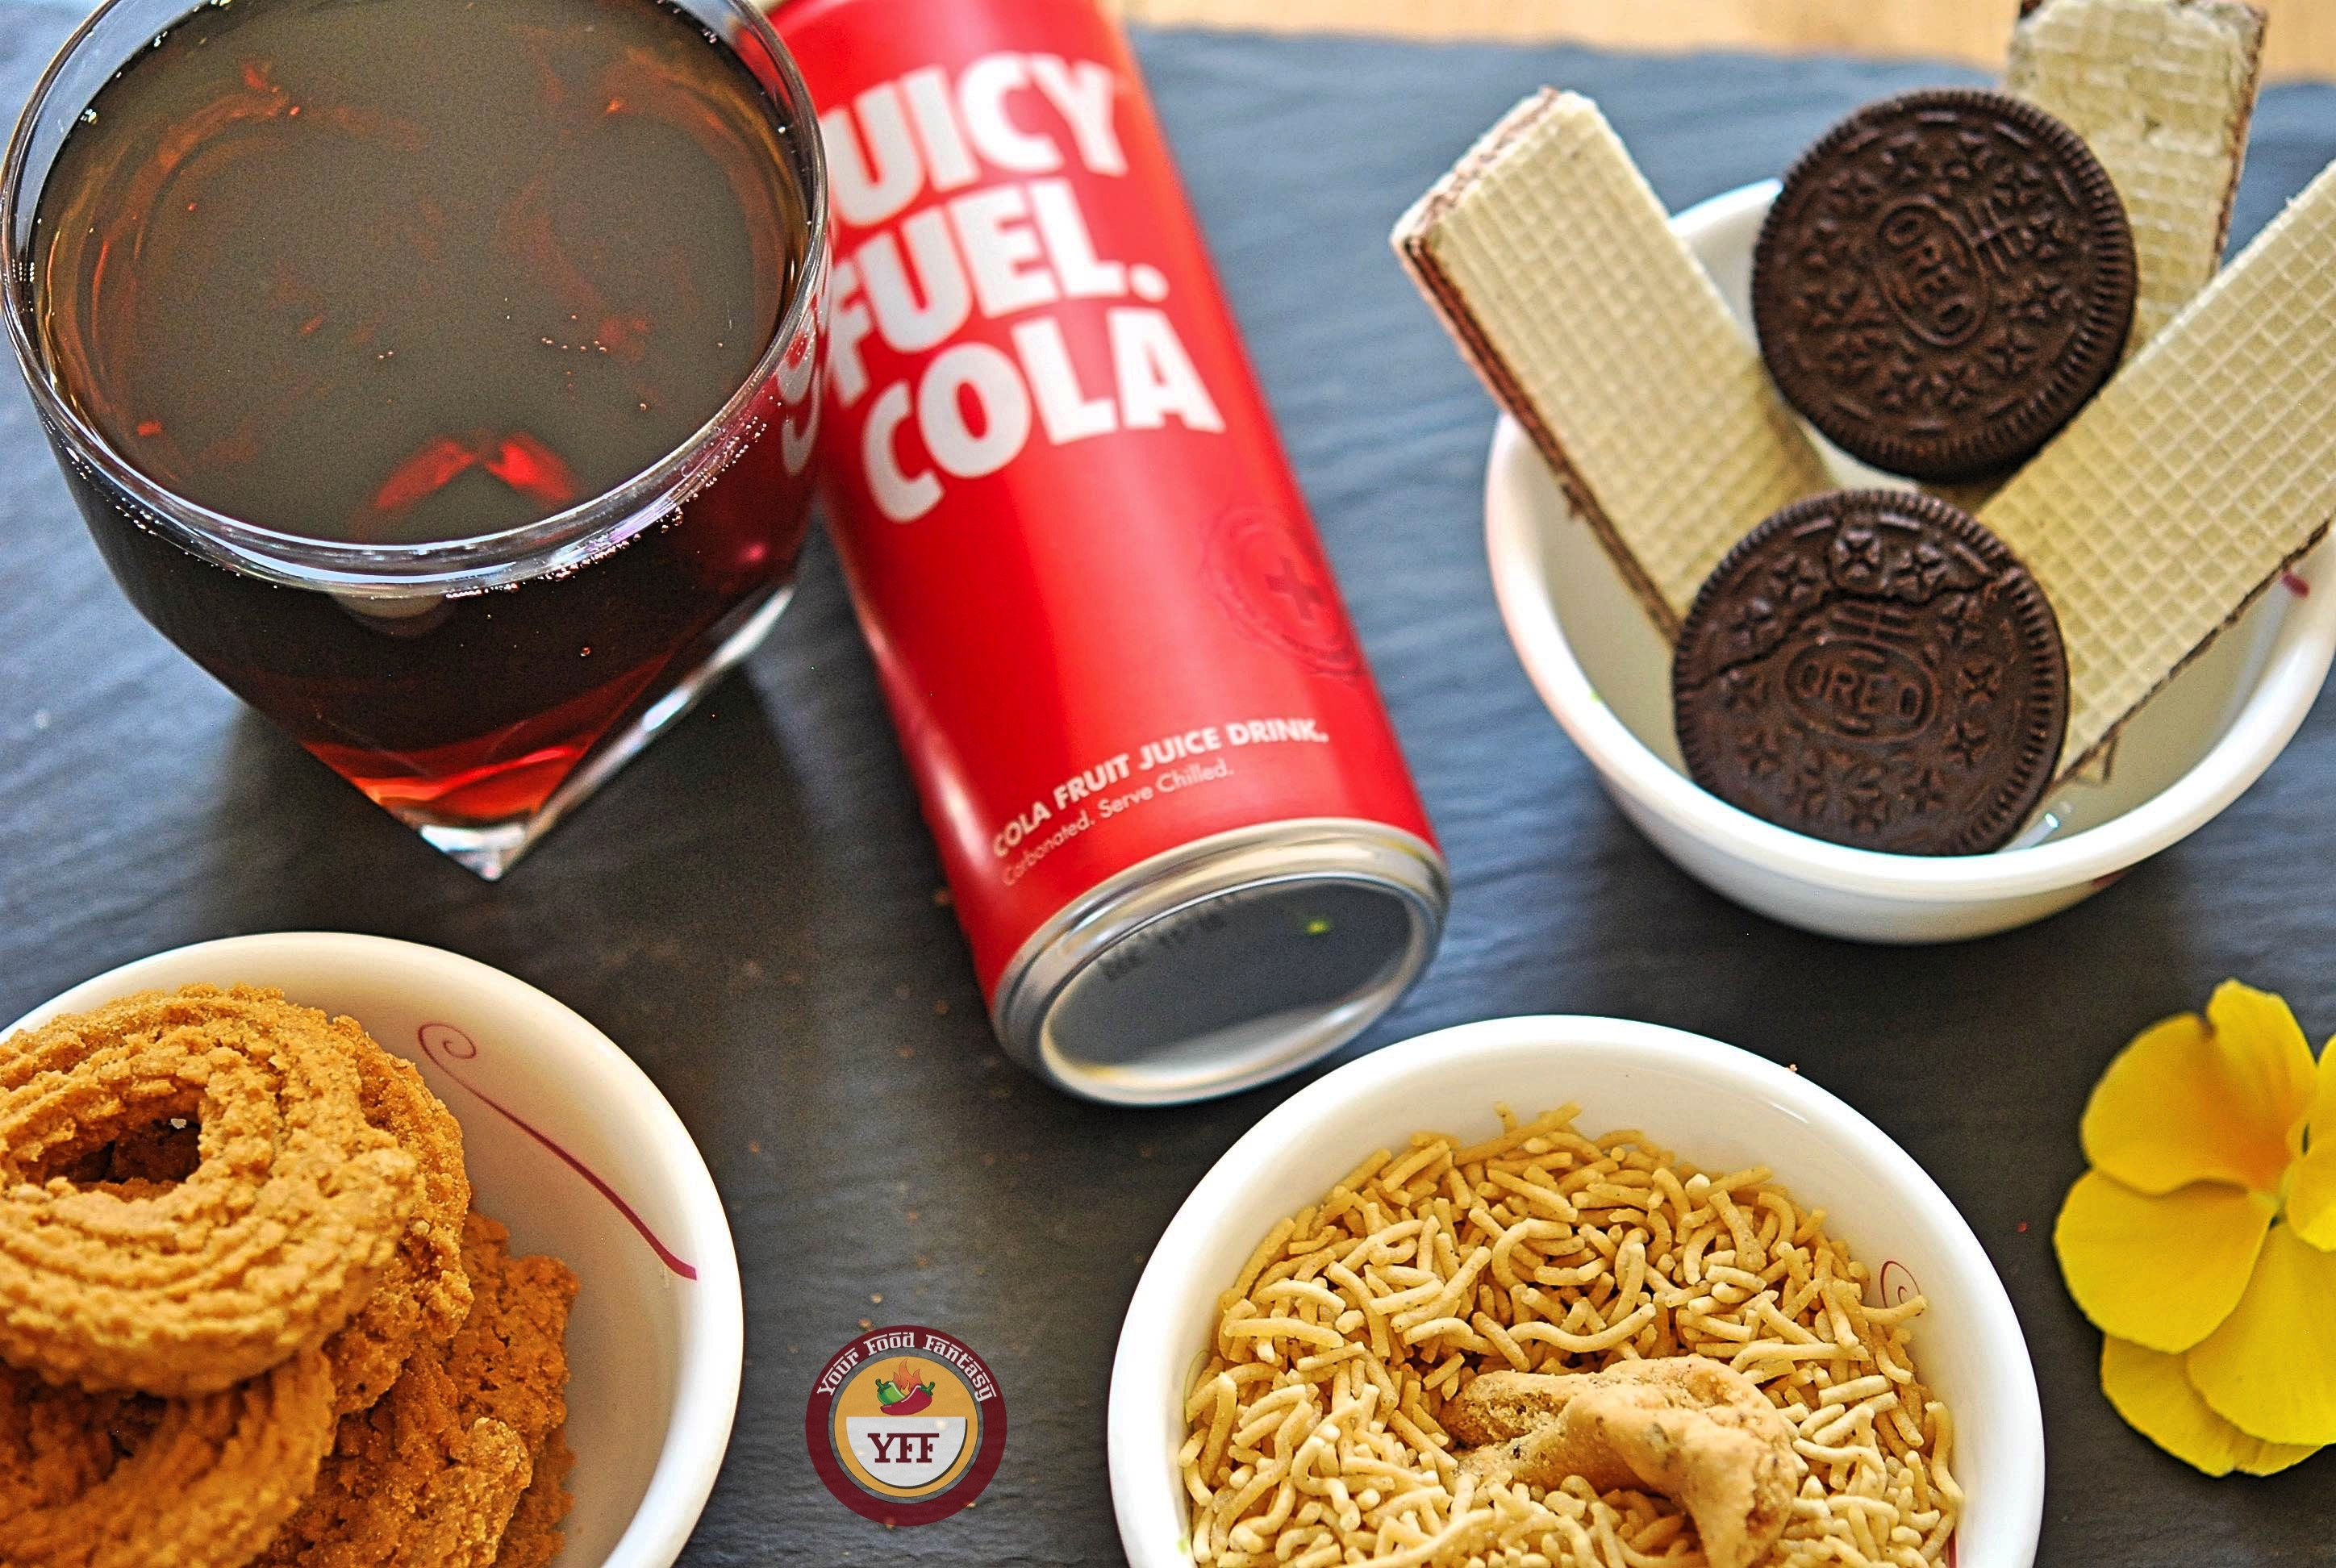 Juicy Cola Review - Degustabox Review | Your Food Fantasy